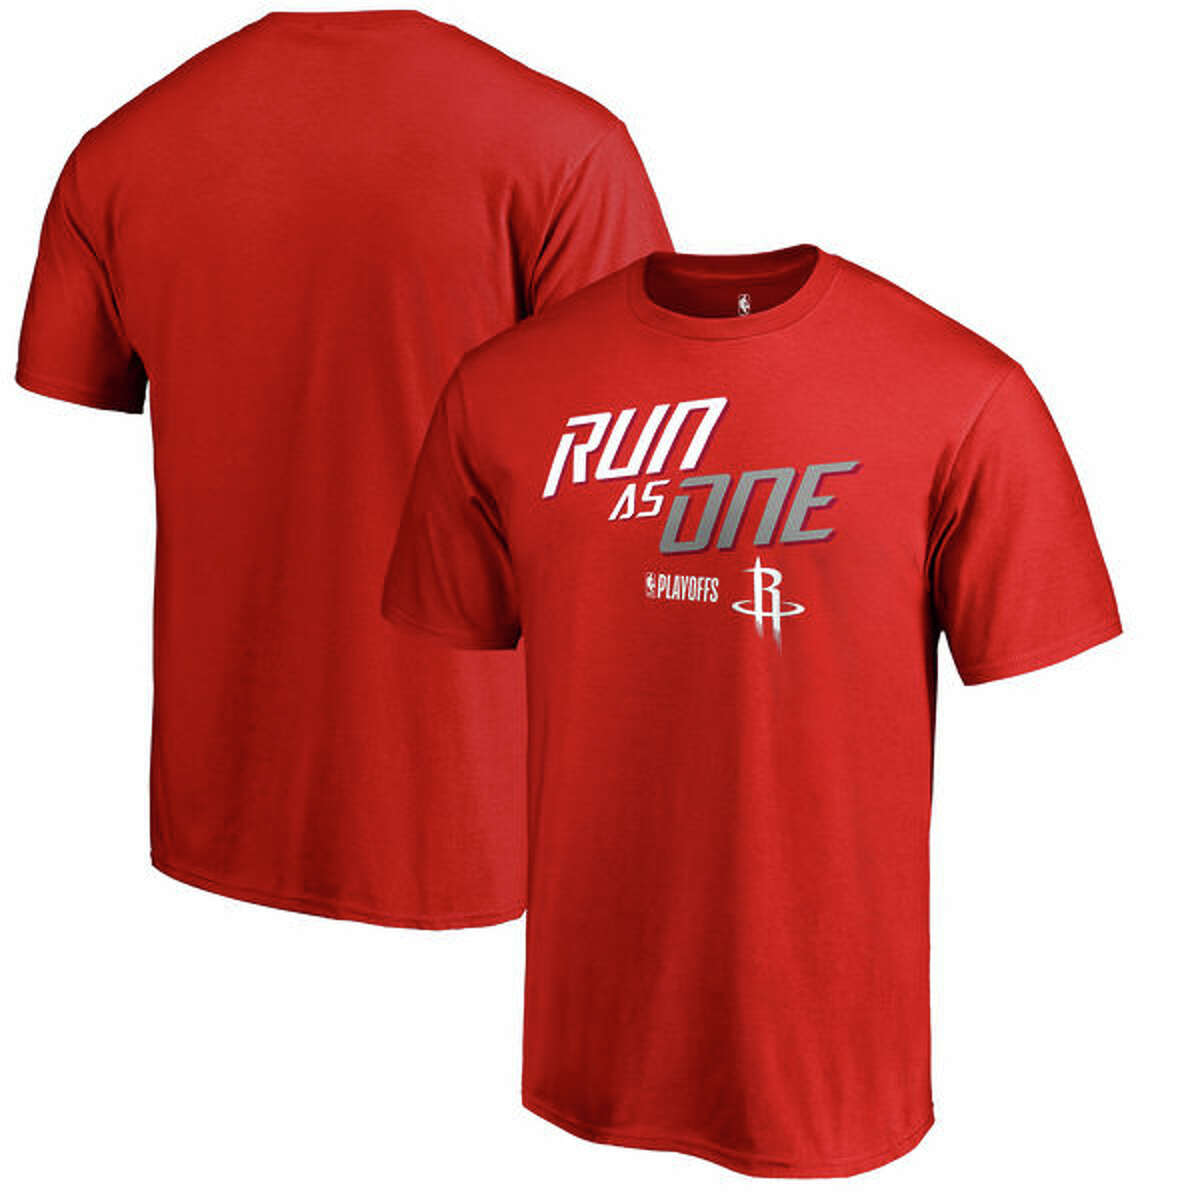 Houston Rockets Fanatics Branded 2018 NBA Playoffs Slogan T-Shirt (See Price or Buy It Now) Also available in Youth and Big & Tall sizes.